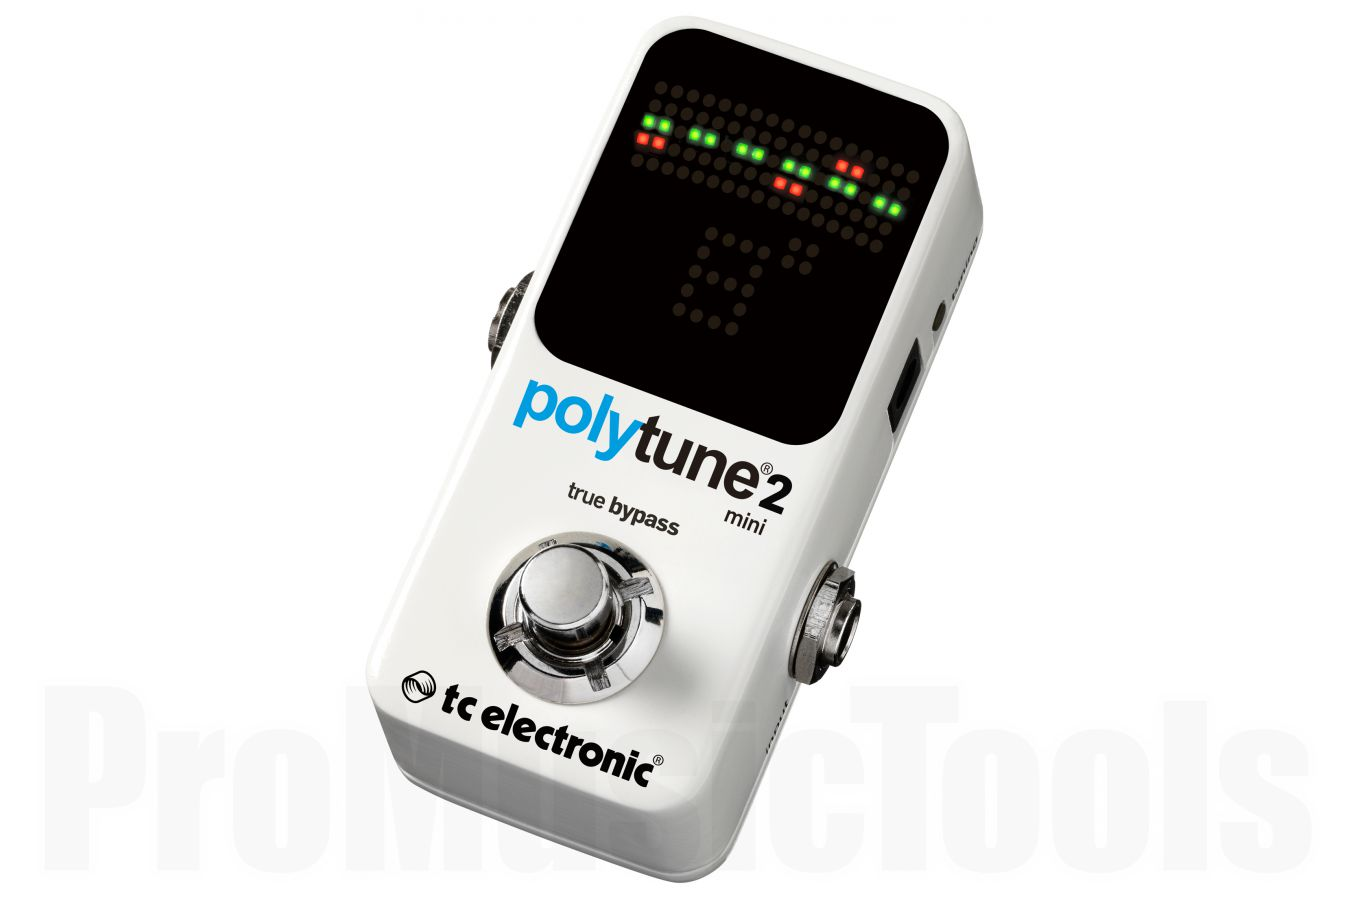 TC Electronic PolyTune 2 mini - b-stock (1x opened box)